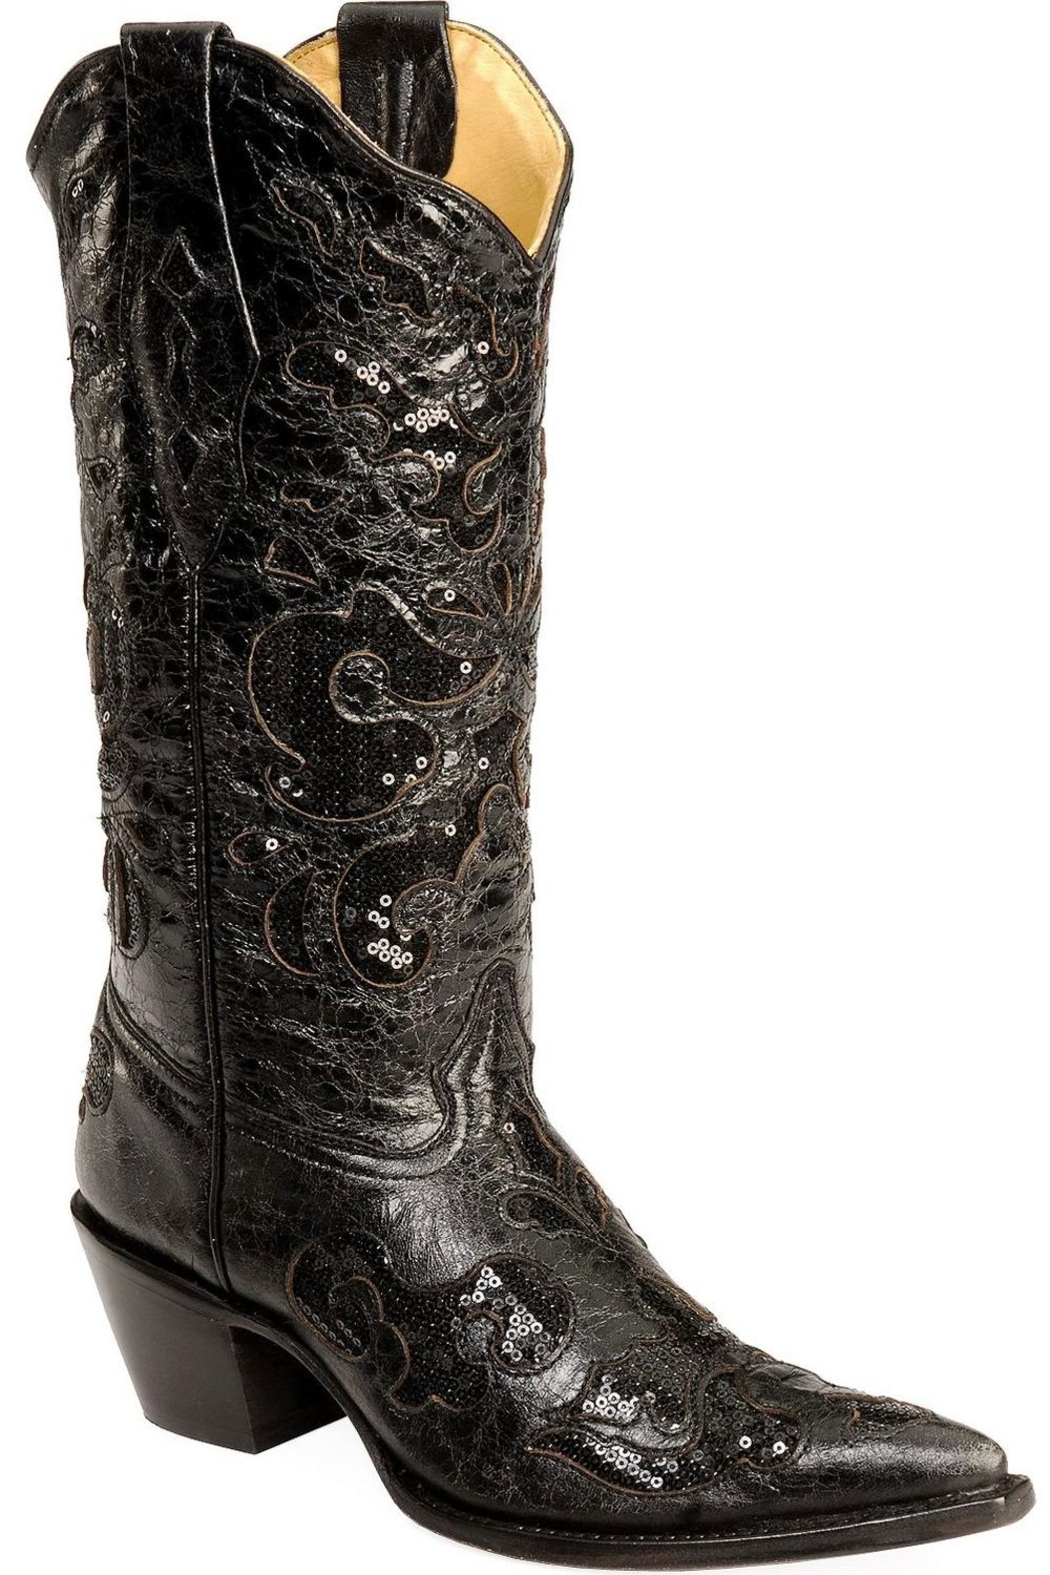 Corral Boots Black Sequence Boots - Side Cropped Image